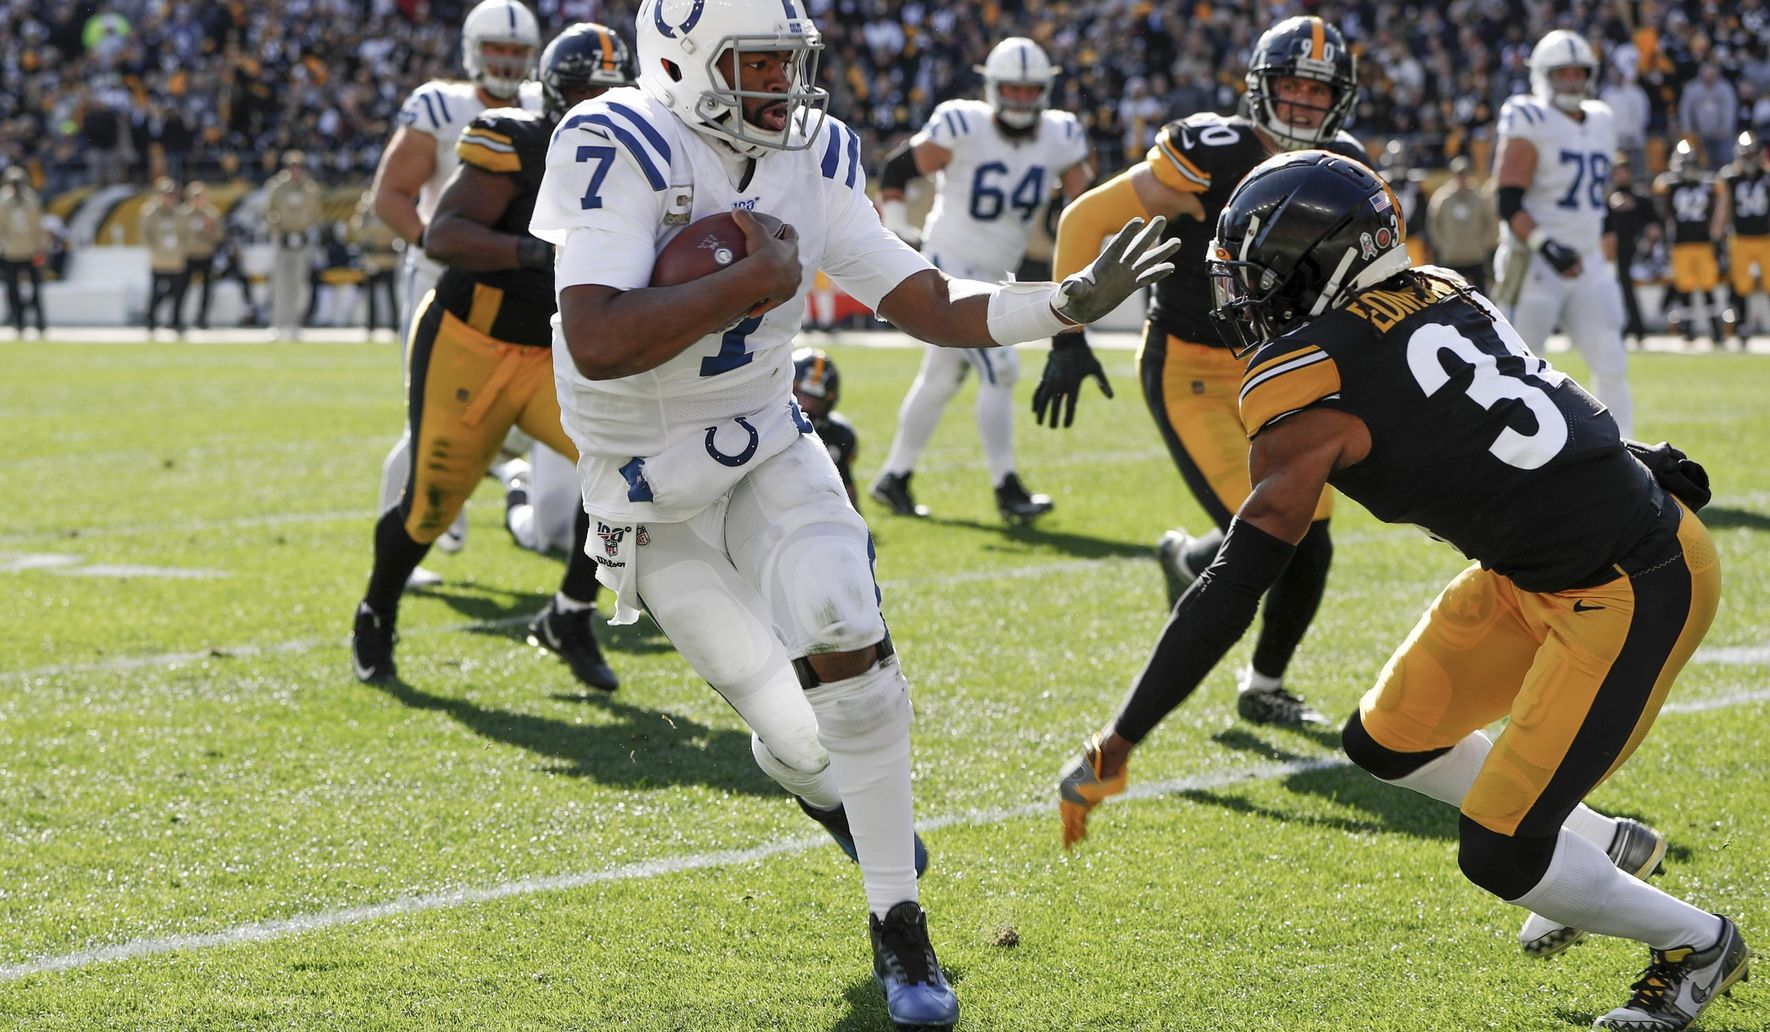 Colts_steelers_football_39179_c0-107-2580-1611_s1770x1032